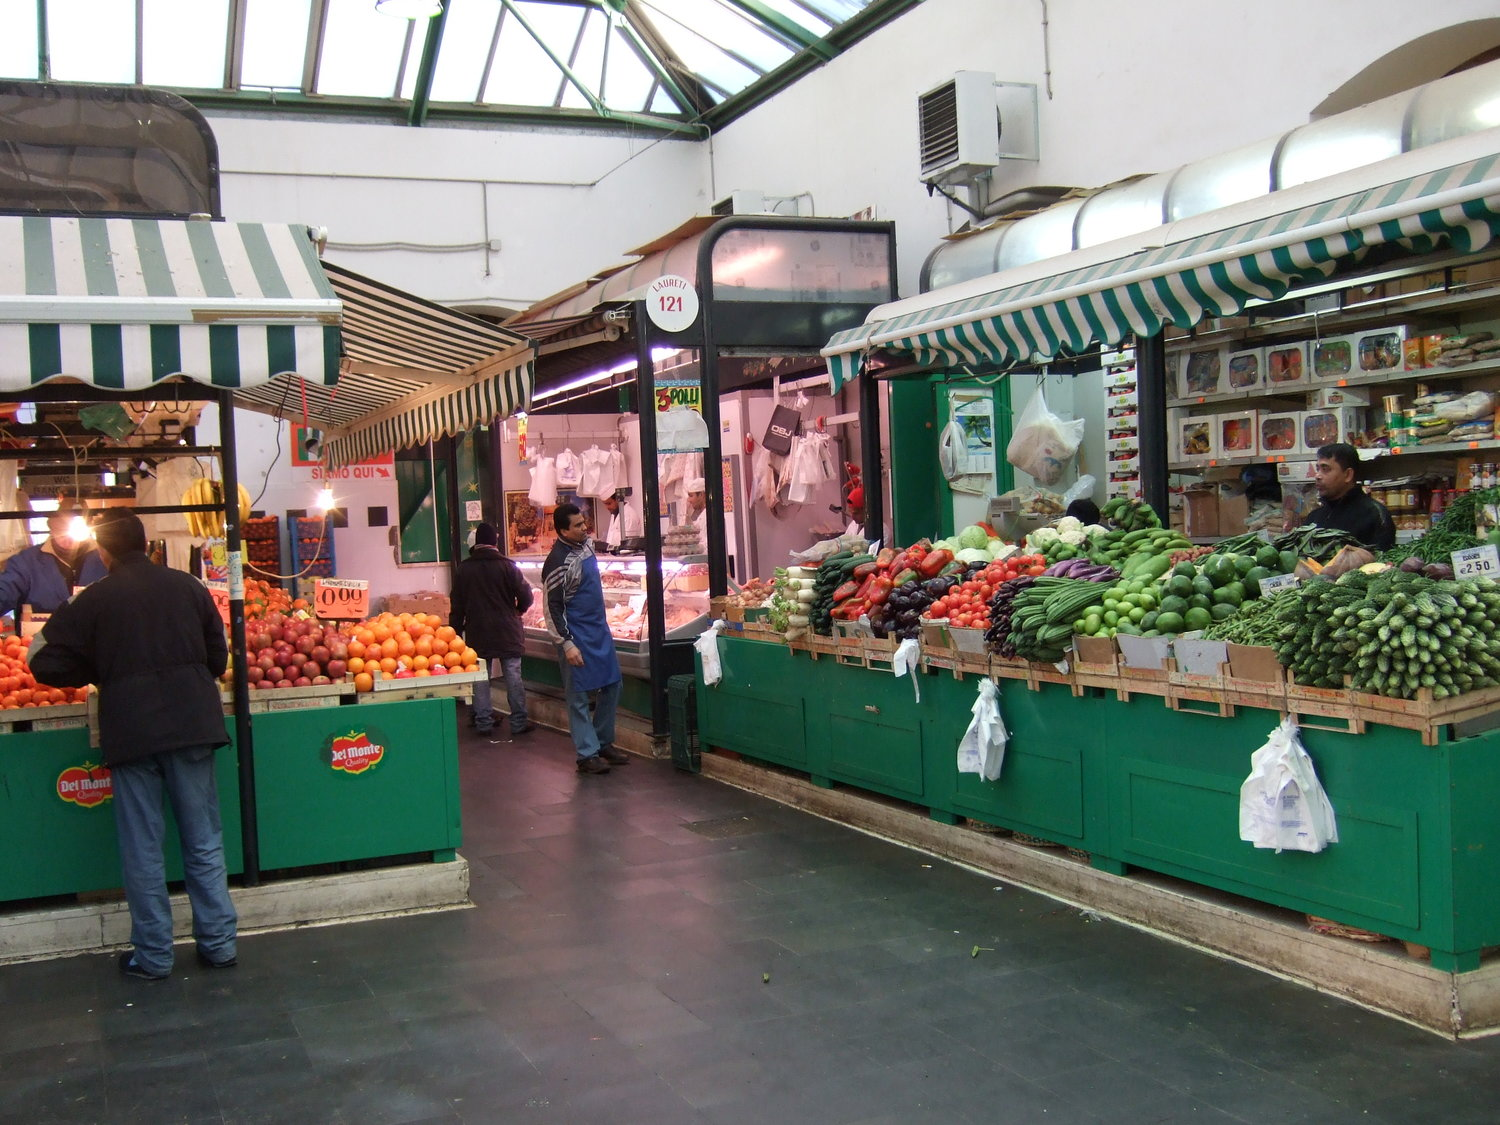 Fish market in Rome. Mercato Esquilino meet and vegetables hall